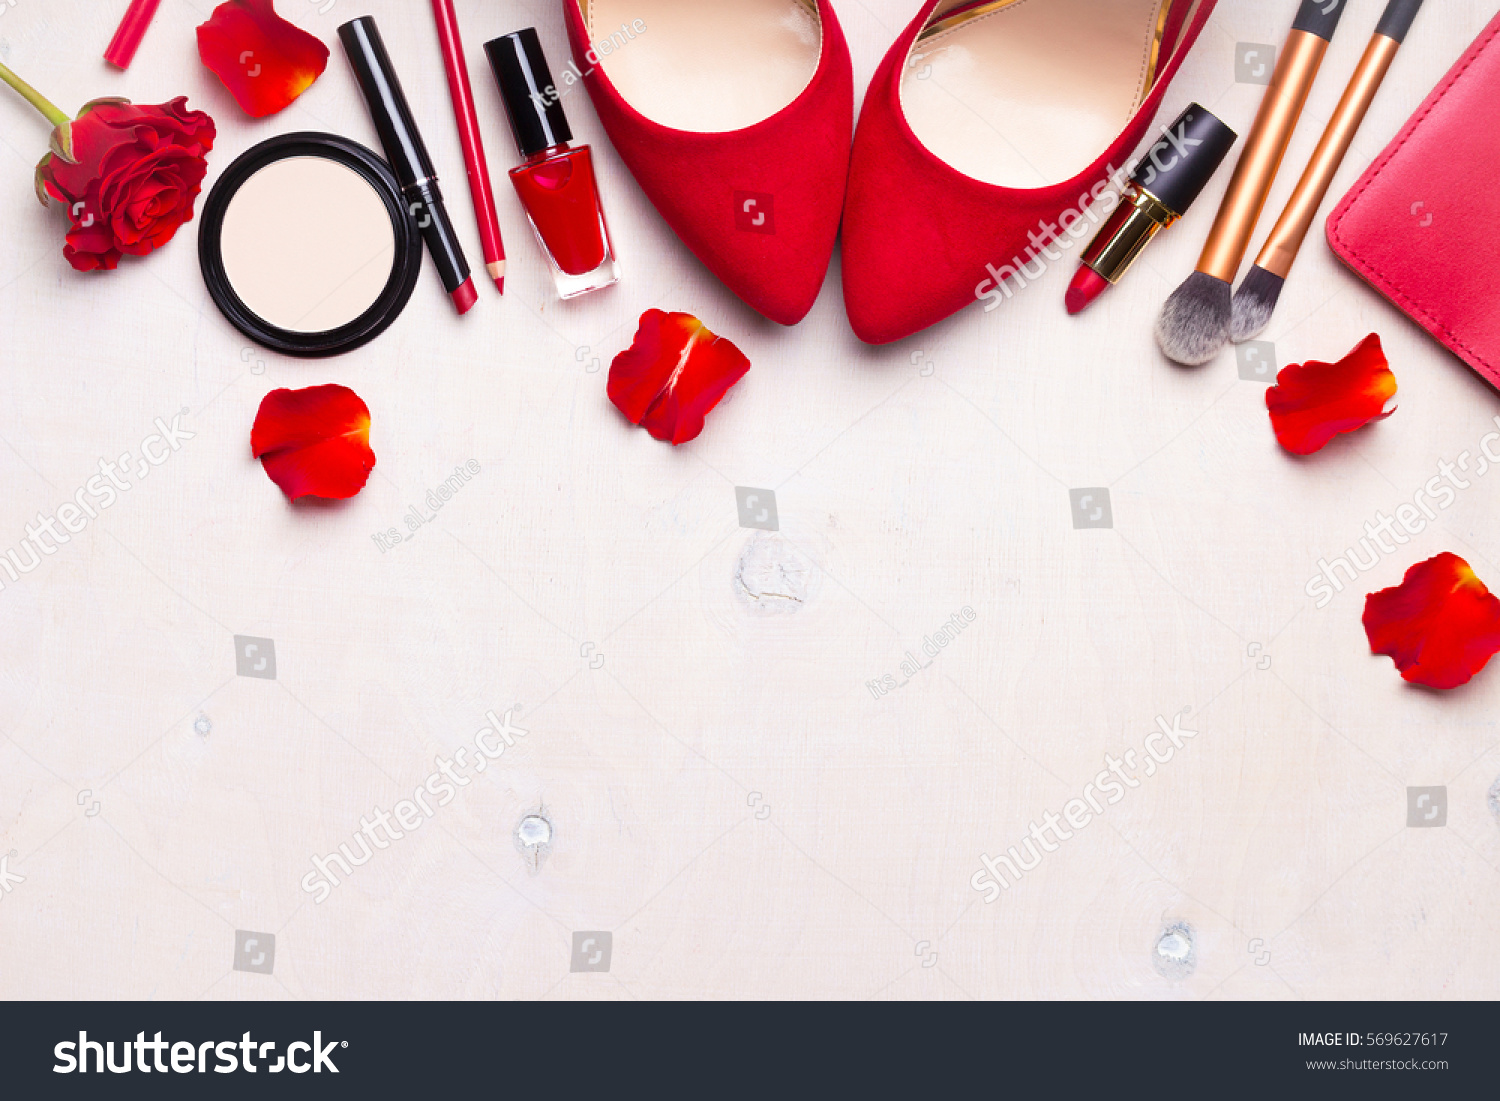 Beauty cosmetic white background. Makeup essentials. Shoes, red lipstick, powder, brushes